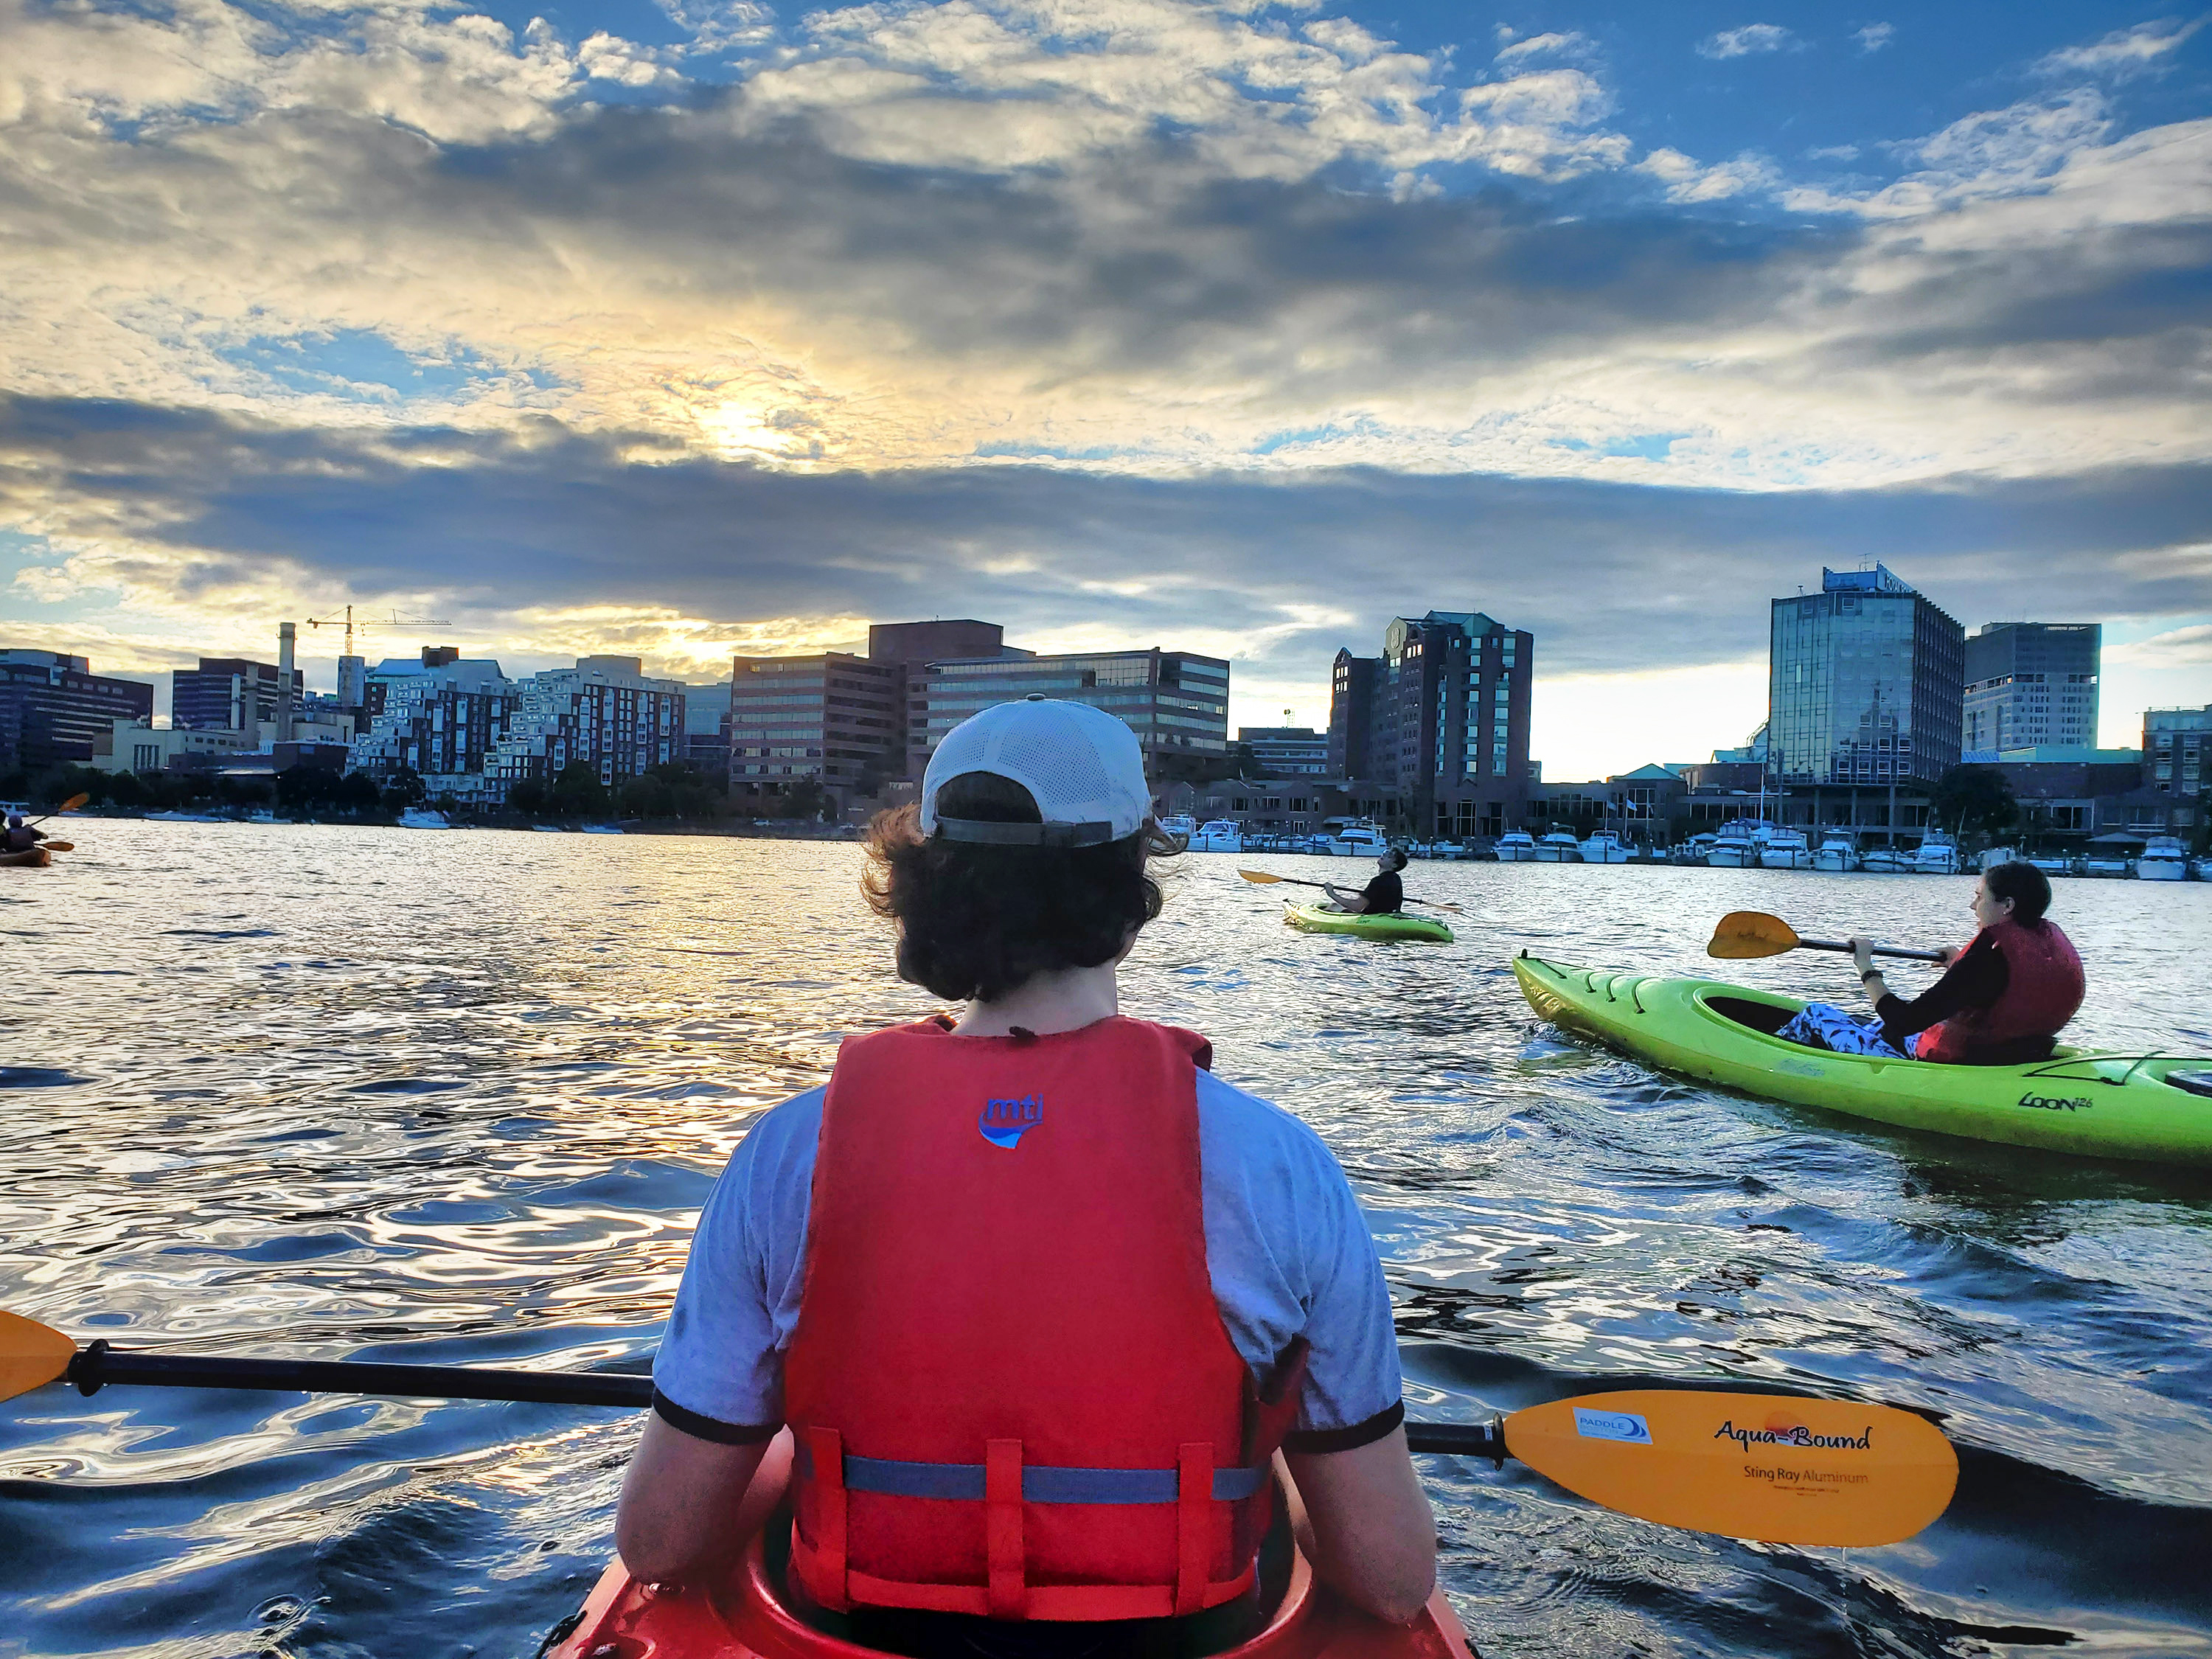 canoing in the Charles